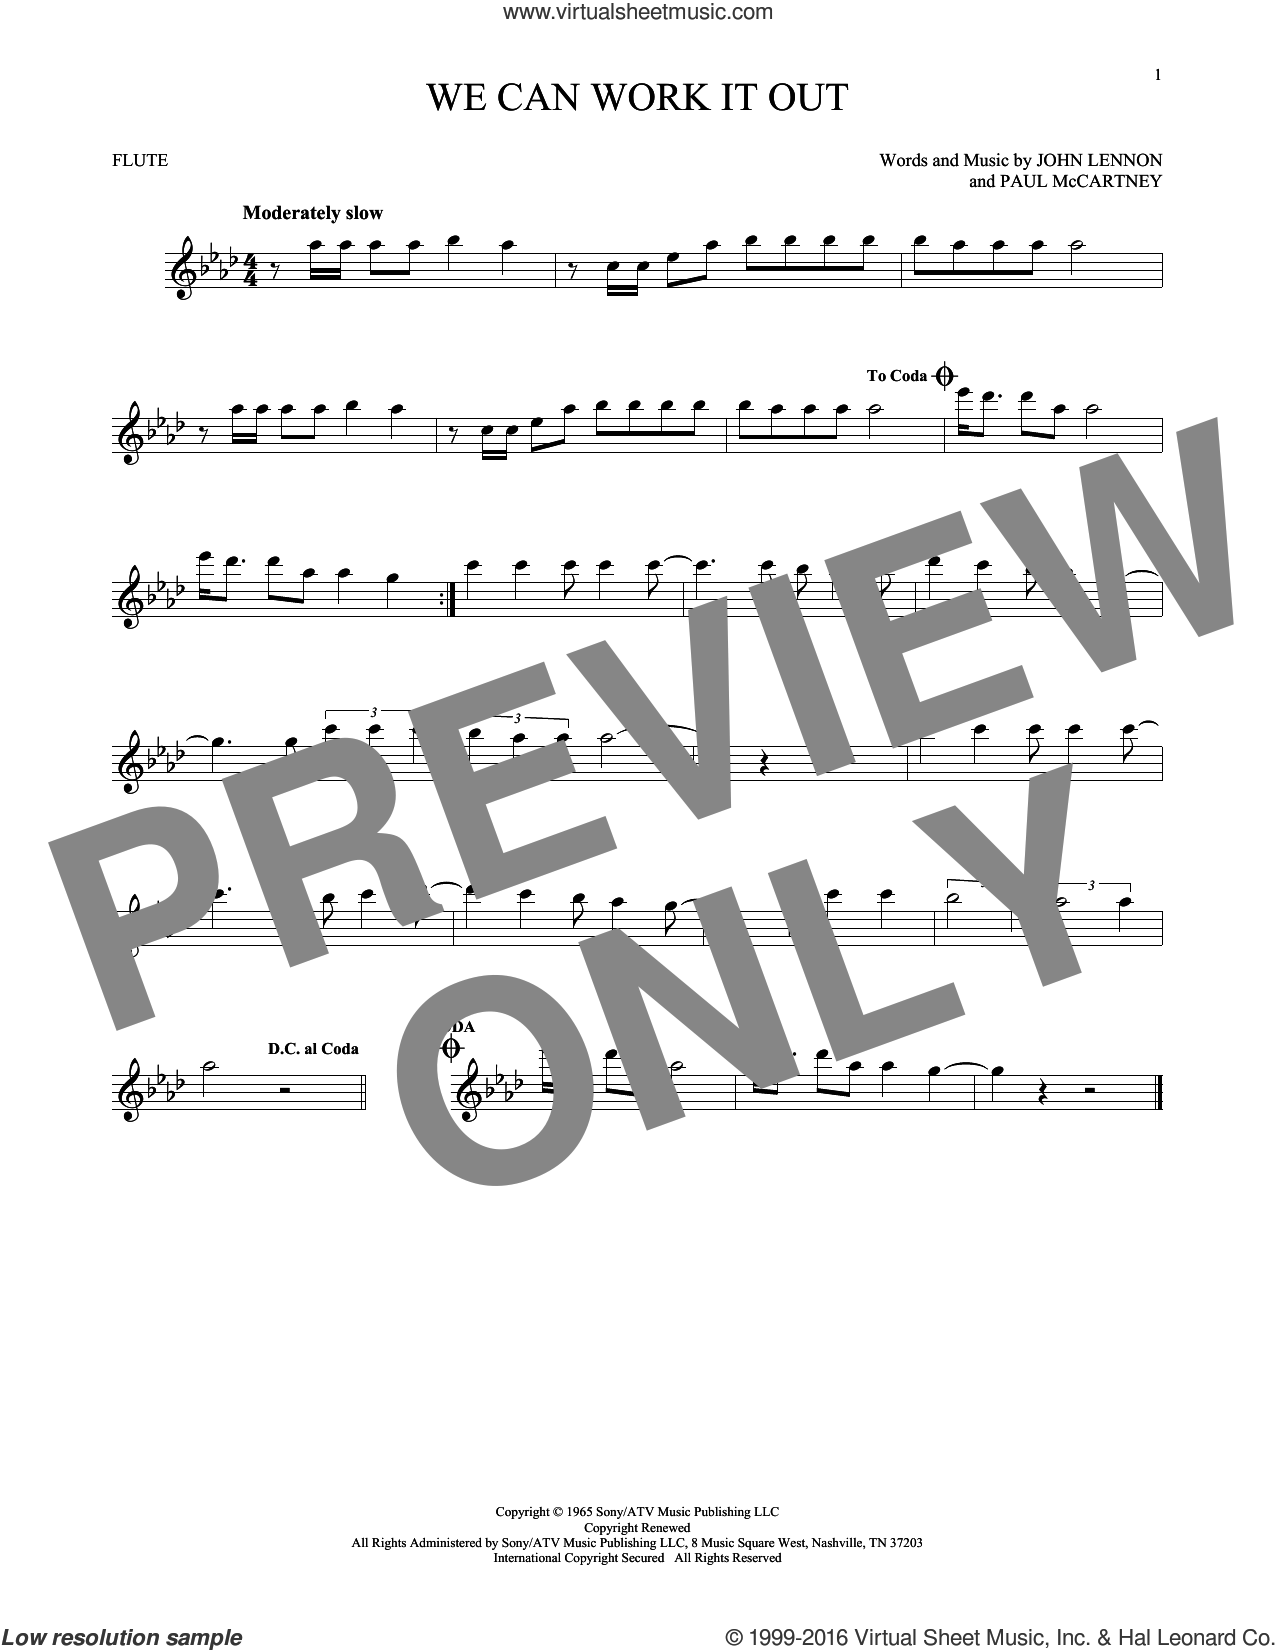 We Can Work It Out sheet music for flute solo by Paul McCartney, The Beatles and John Lennon. Score Image Preview.